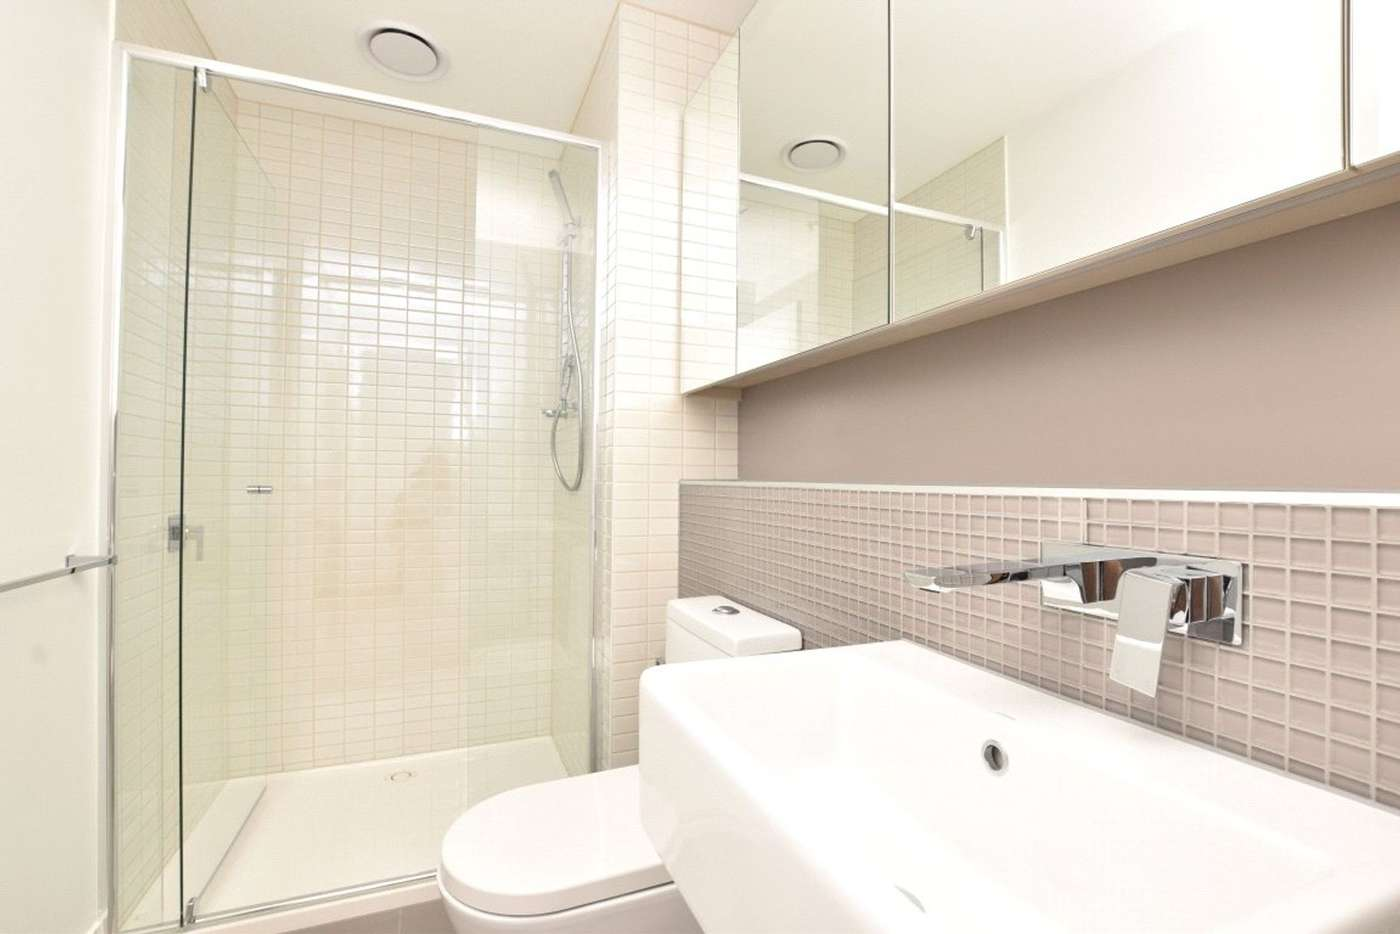 Sixth view of Homely apartment listing, 3307/38 Rose Lane, Melbourne VIC 3000